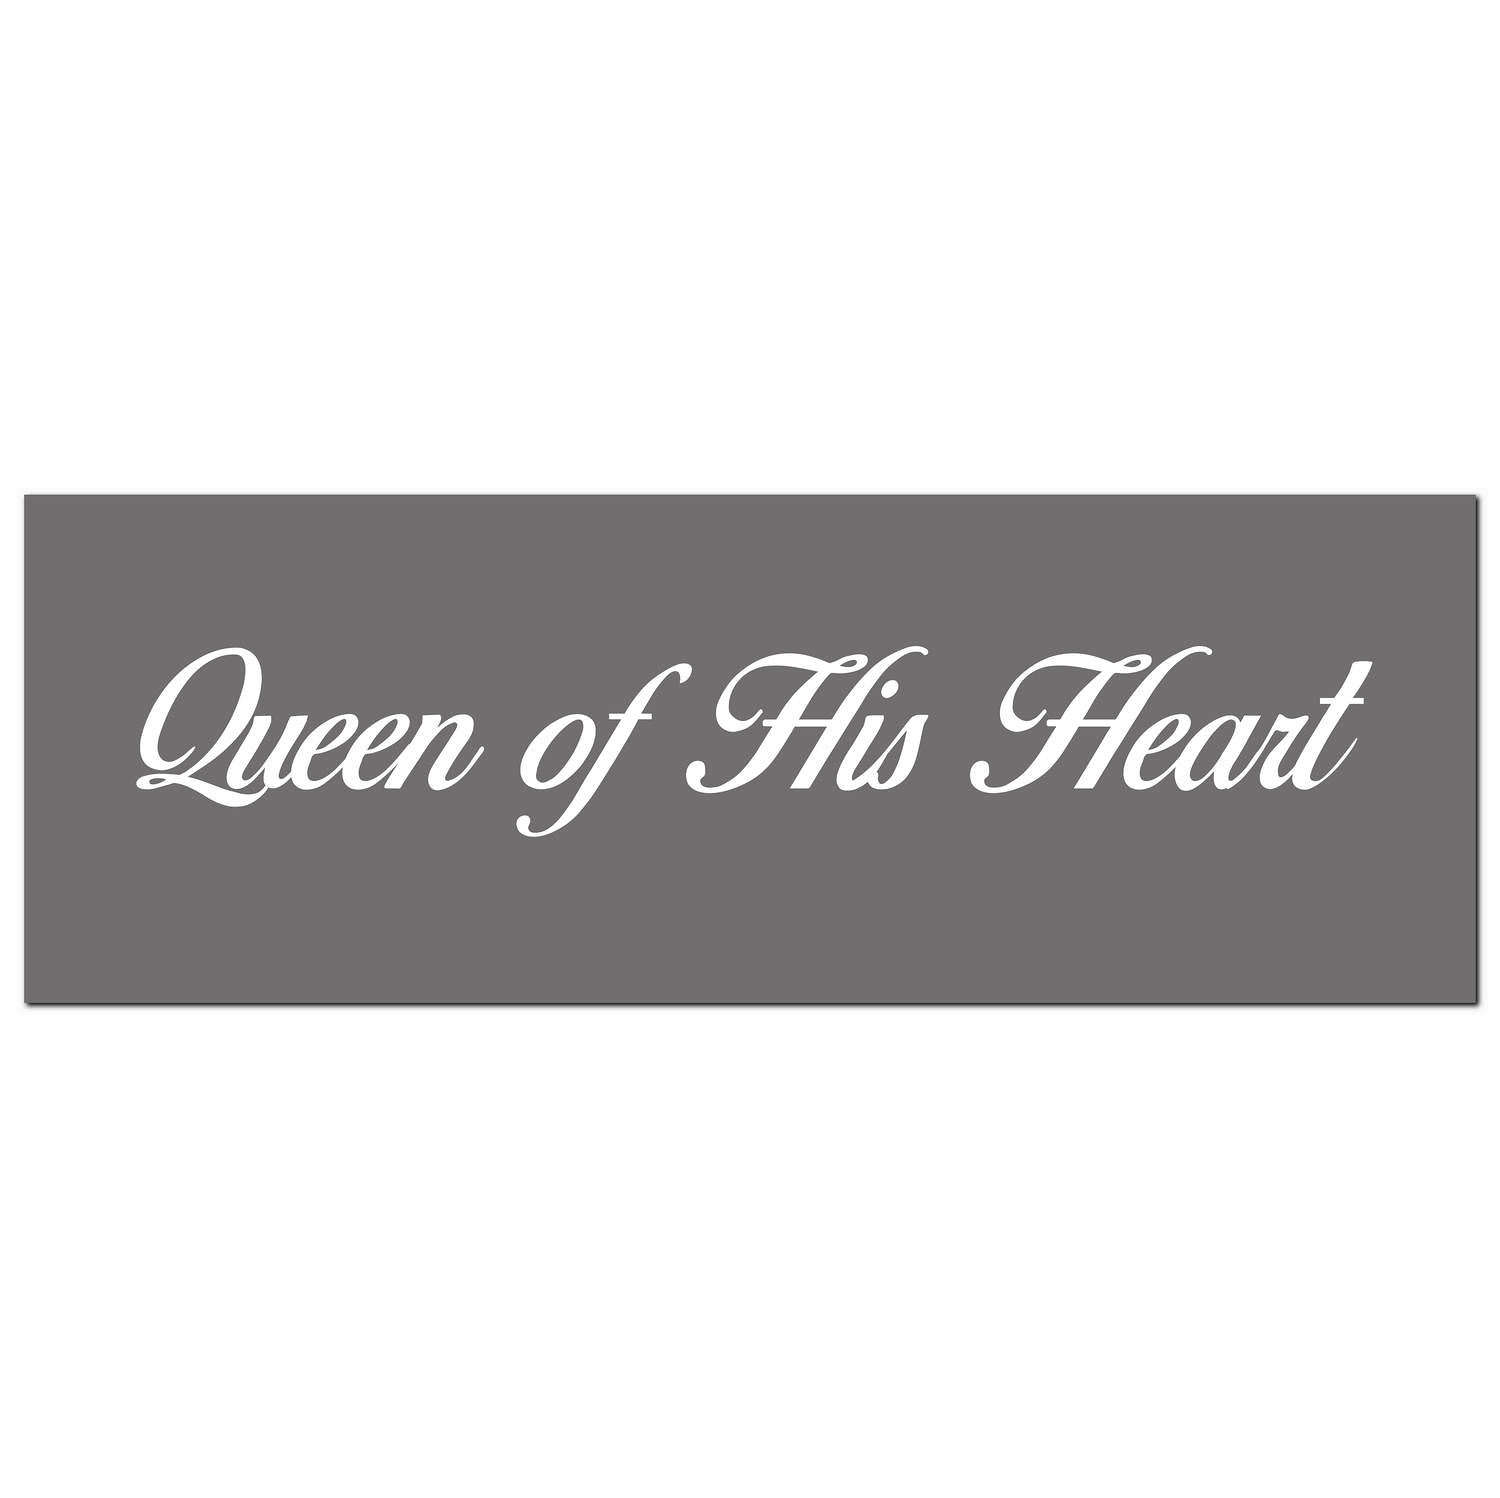 'Queen of his heart' silver foil on grey background